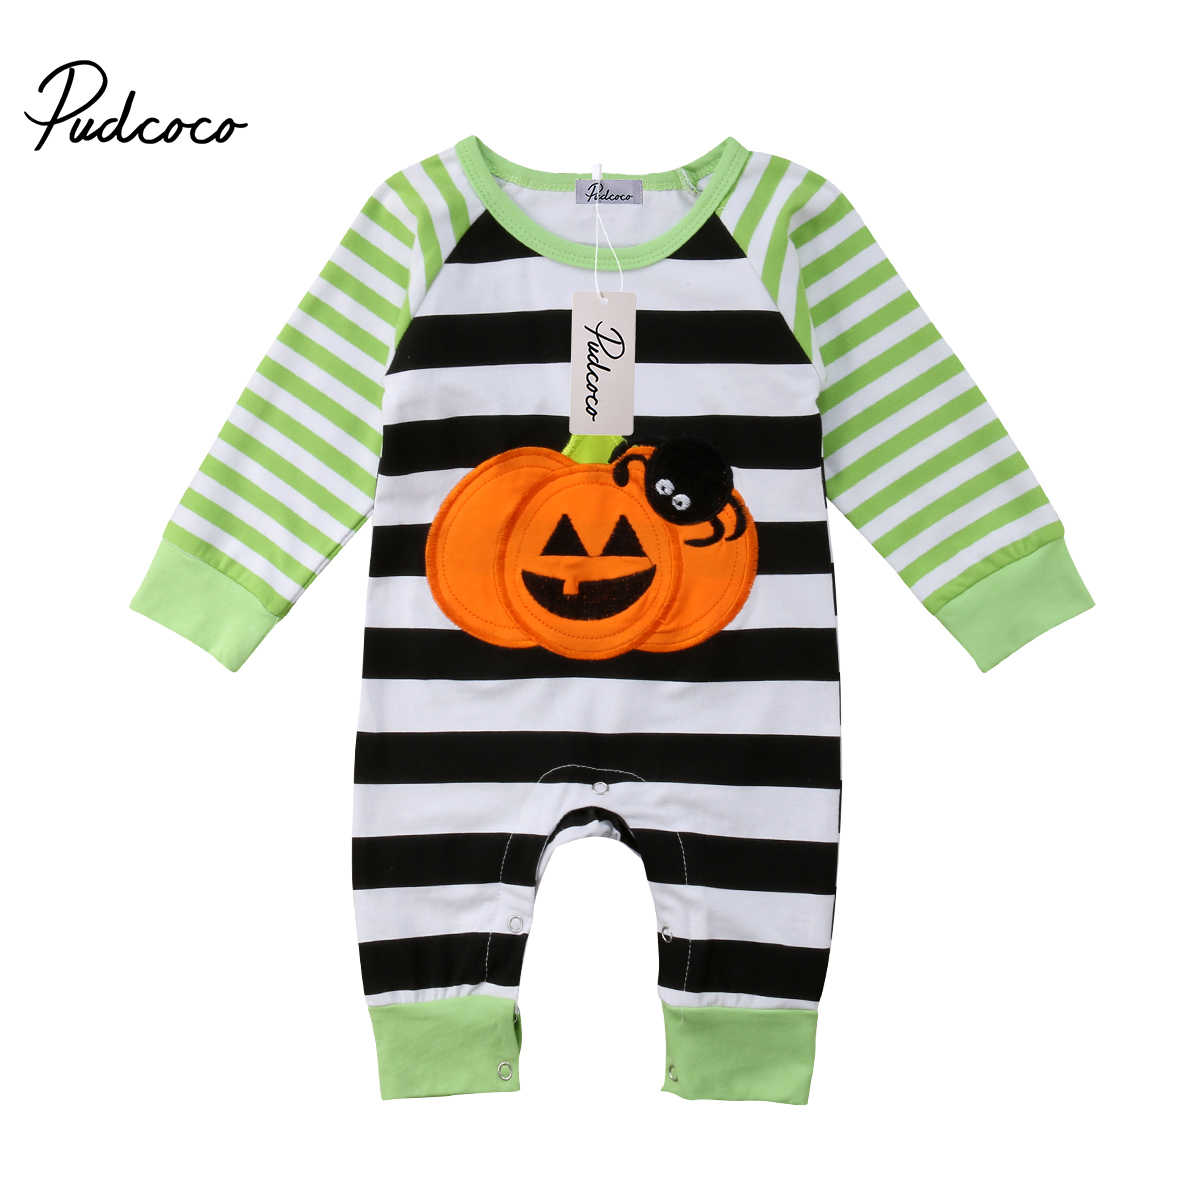 9490f7884 Detail Feedback Questions about 2018 Brand New Halloween Newborn ...